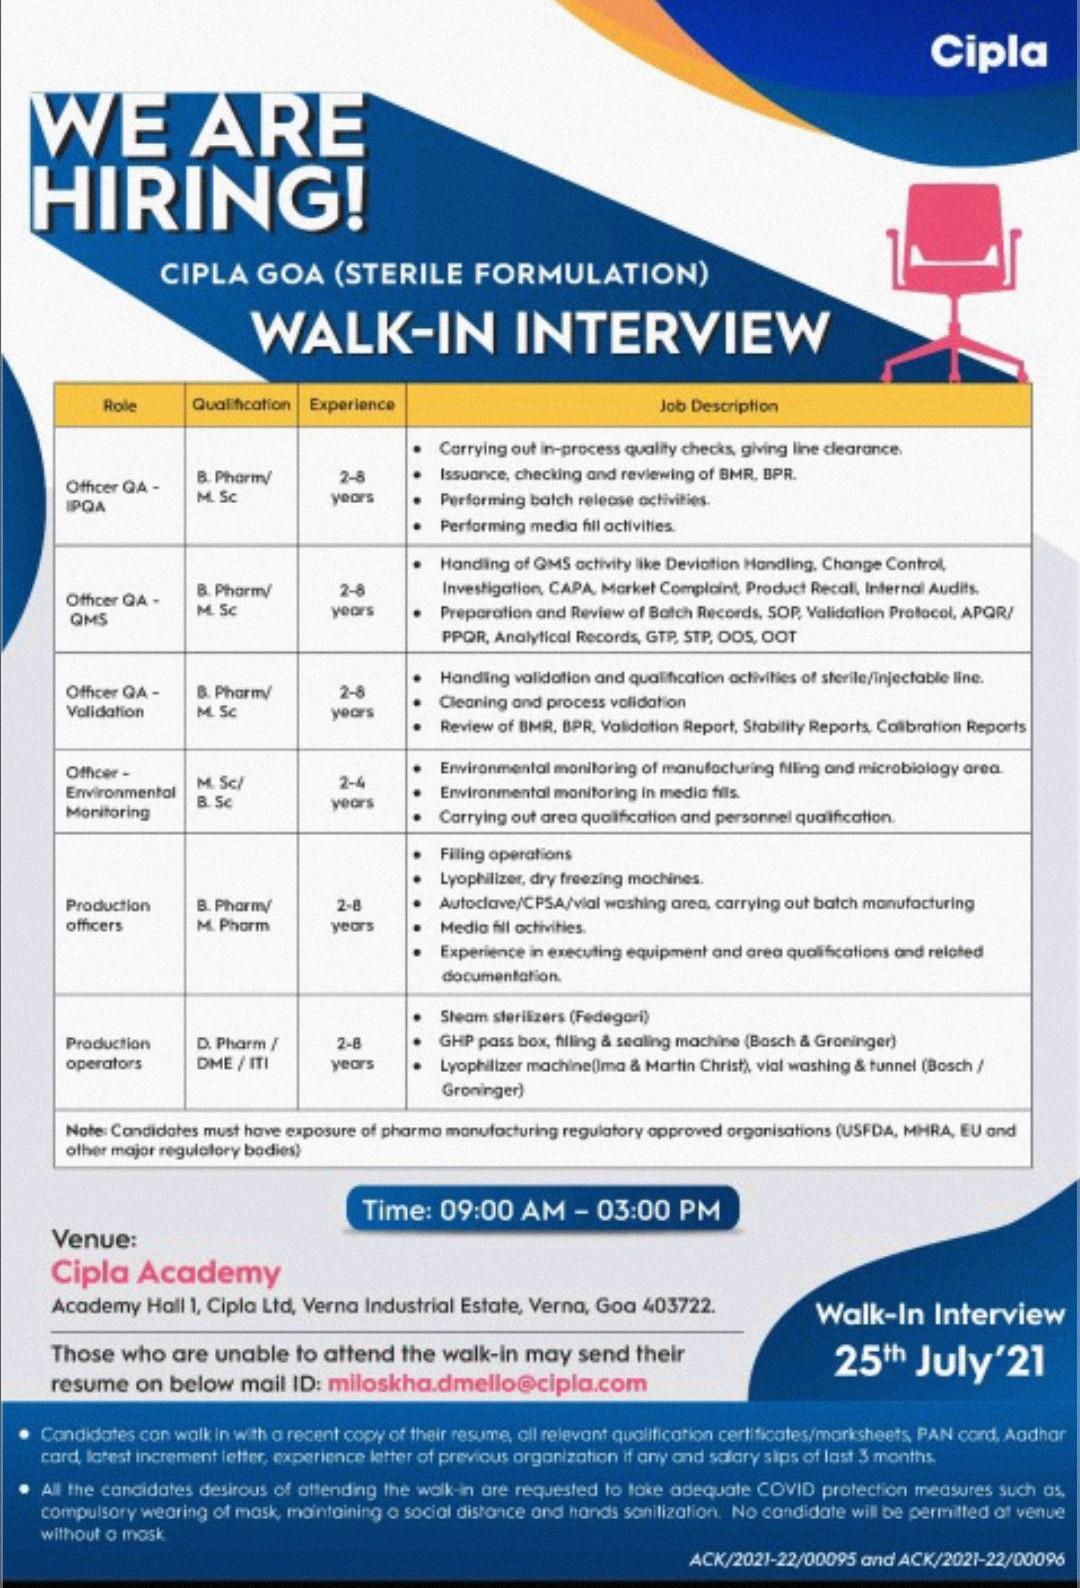 Walk-in By Cipla For Production, QA, Engineering Department